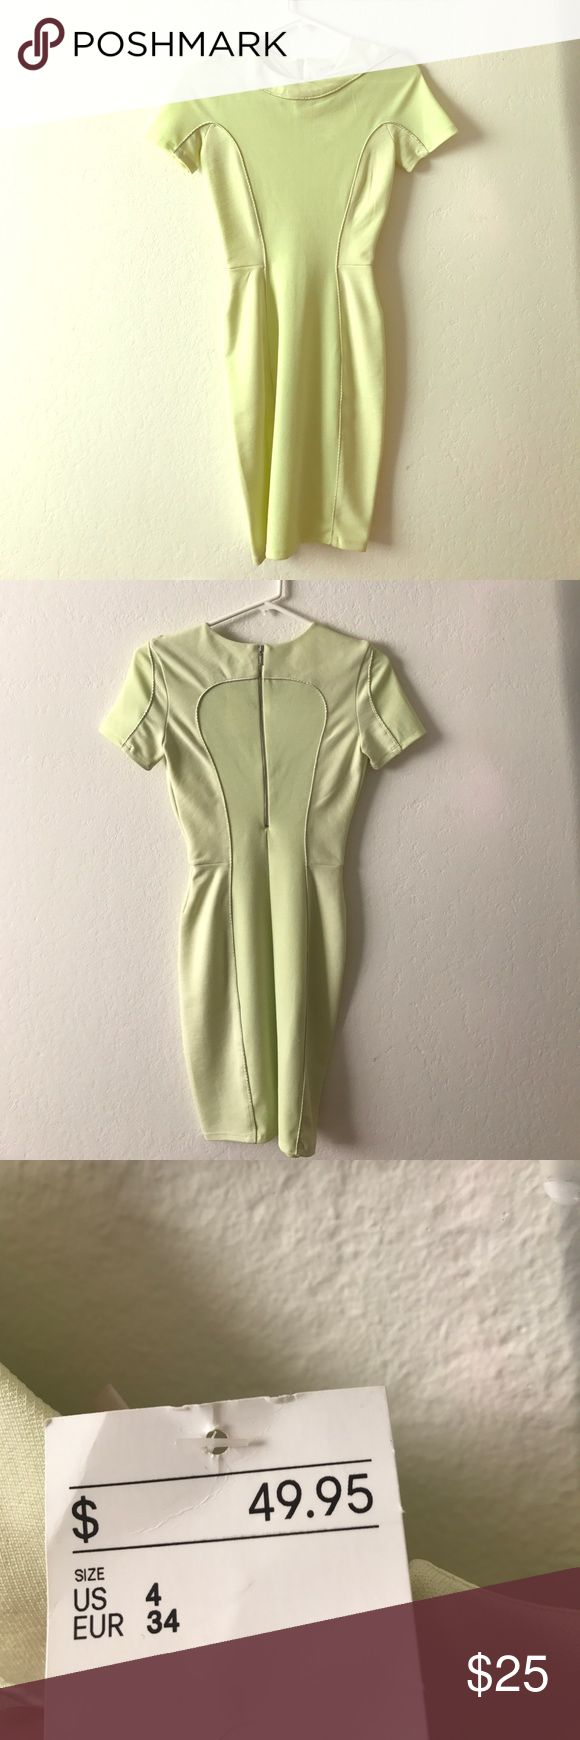 Brand new body hugging neon green dress from H&M! Body hugging neon green mid-length dress! Great for parties or even work!  Materials: viscose, polyester, polyamide, elastane, metallised fibre. H&M sizing tends to run small. H&M Dresses Midi